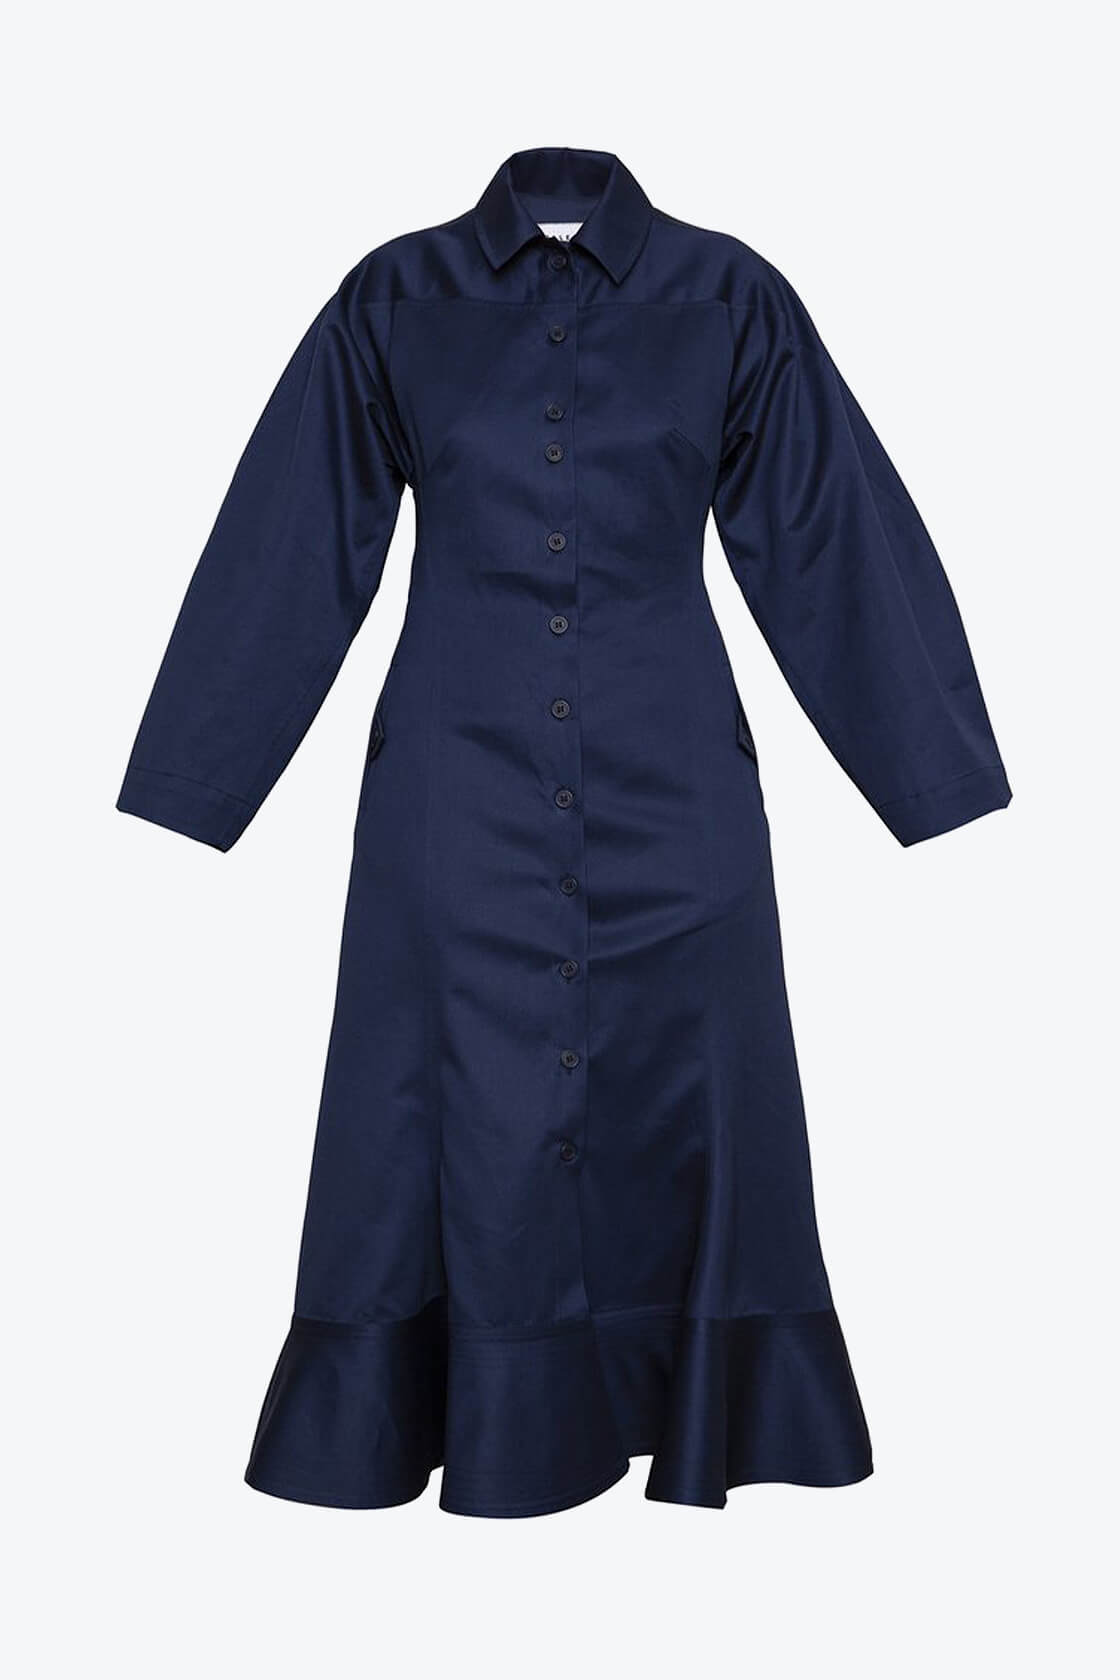 OL10000206 Wide sleeve dress navy blue1